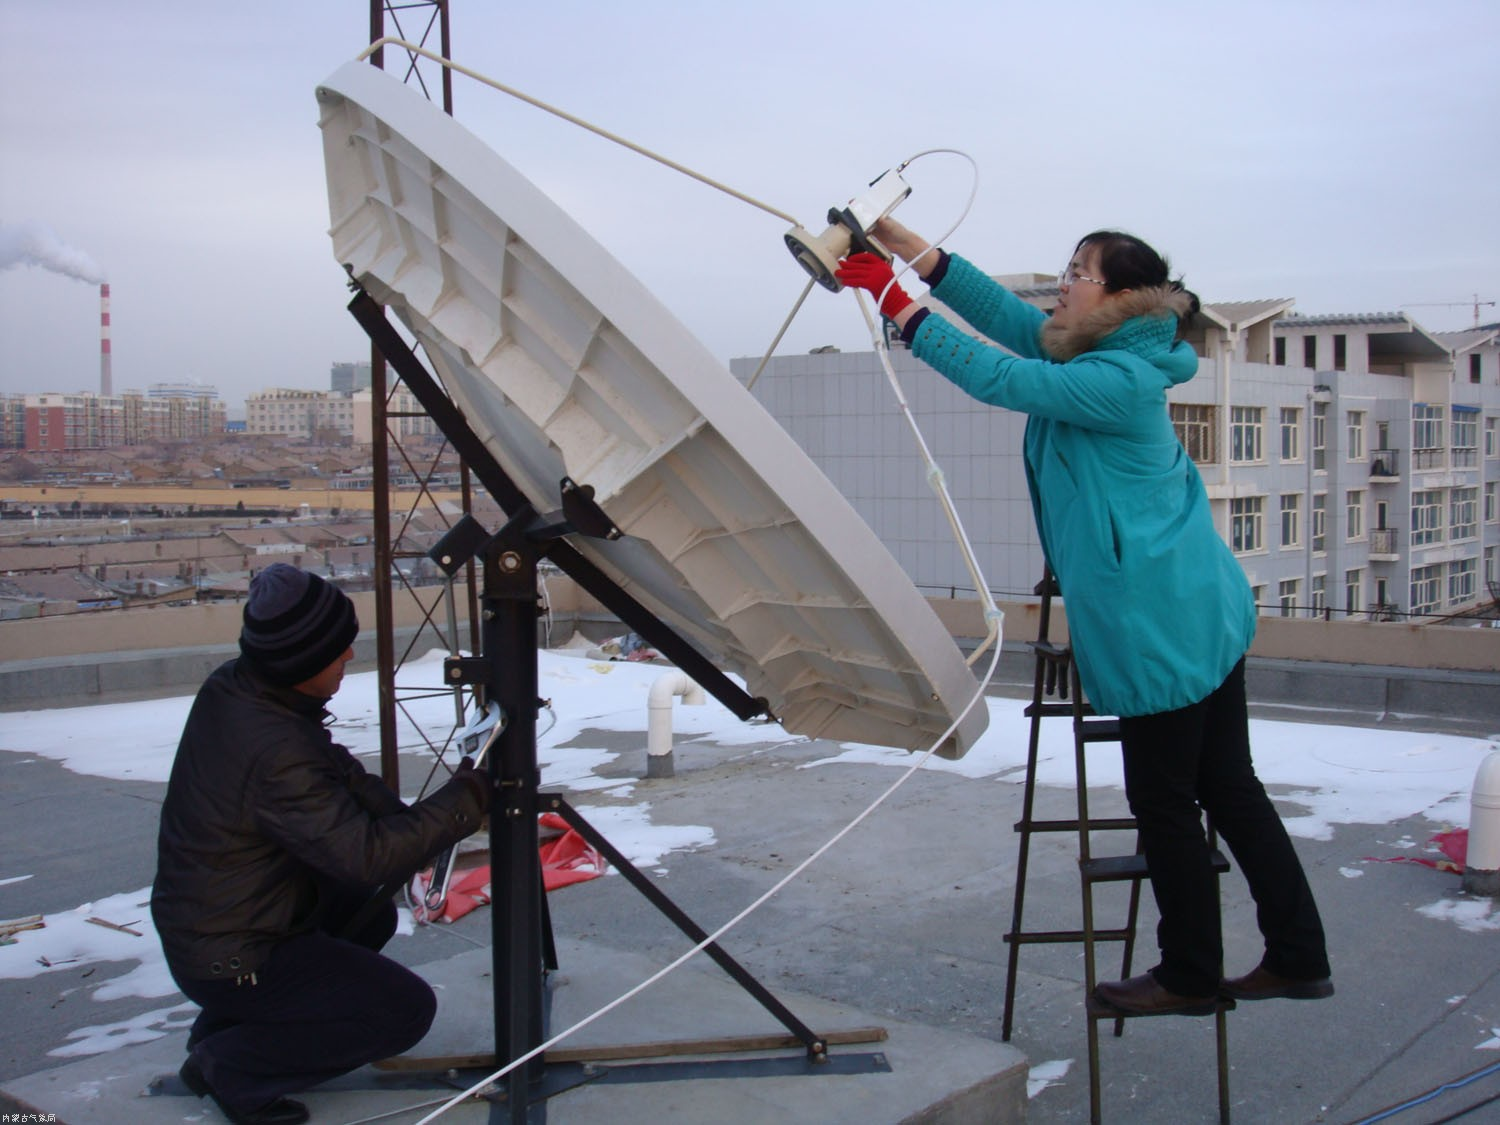 Setting up urban observation networks